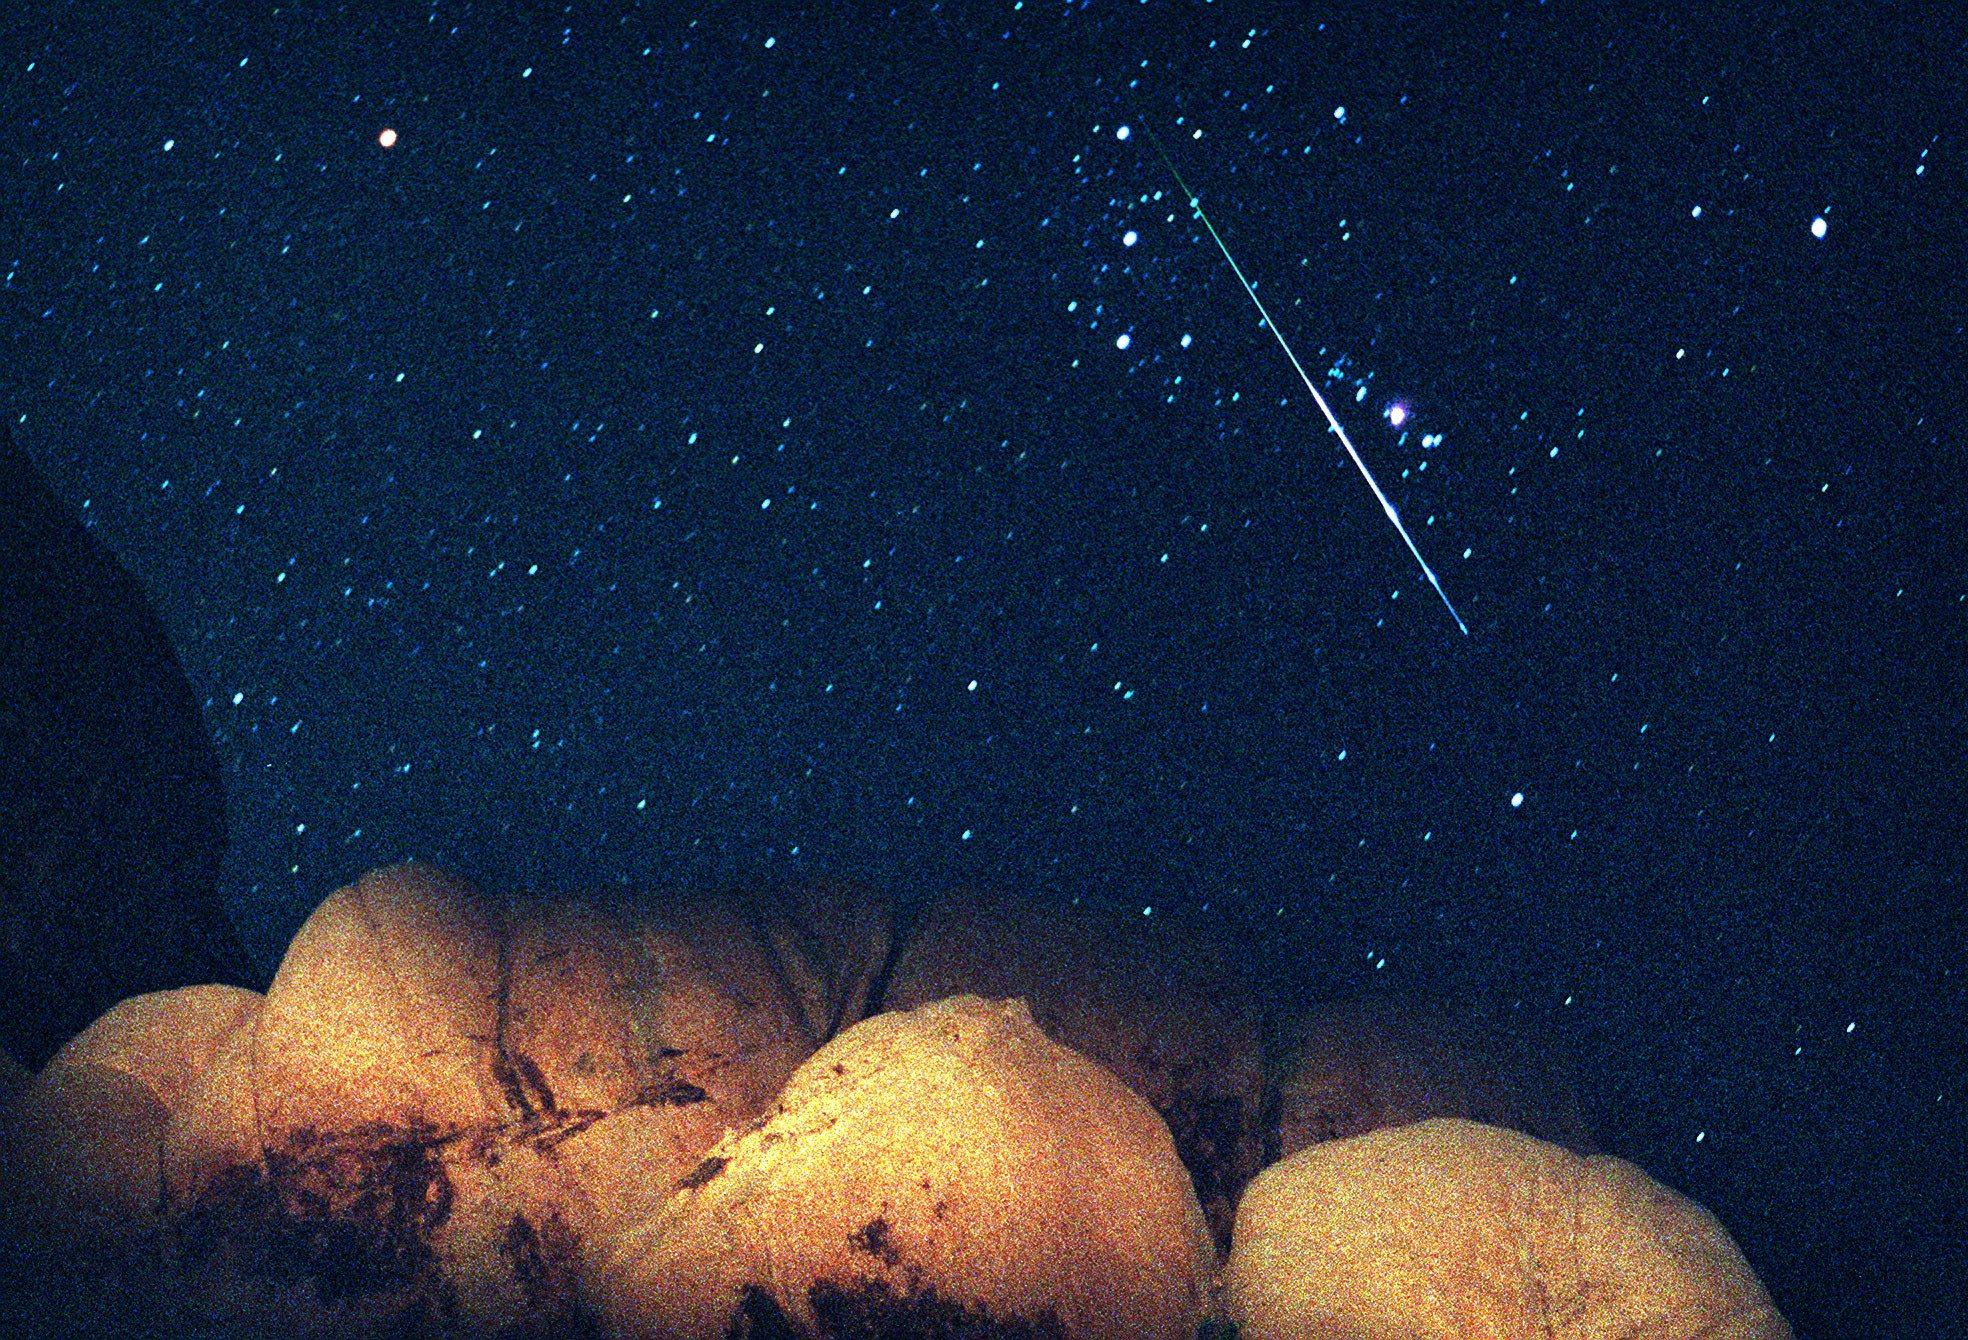 The meteors are coming tonight, but the bright moon will